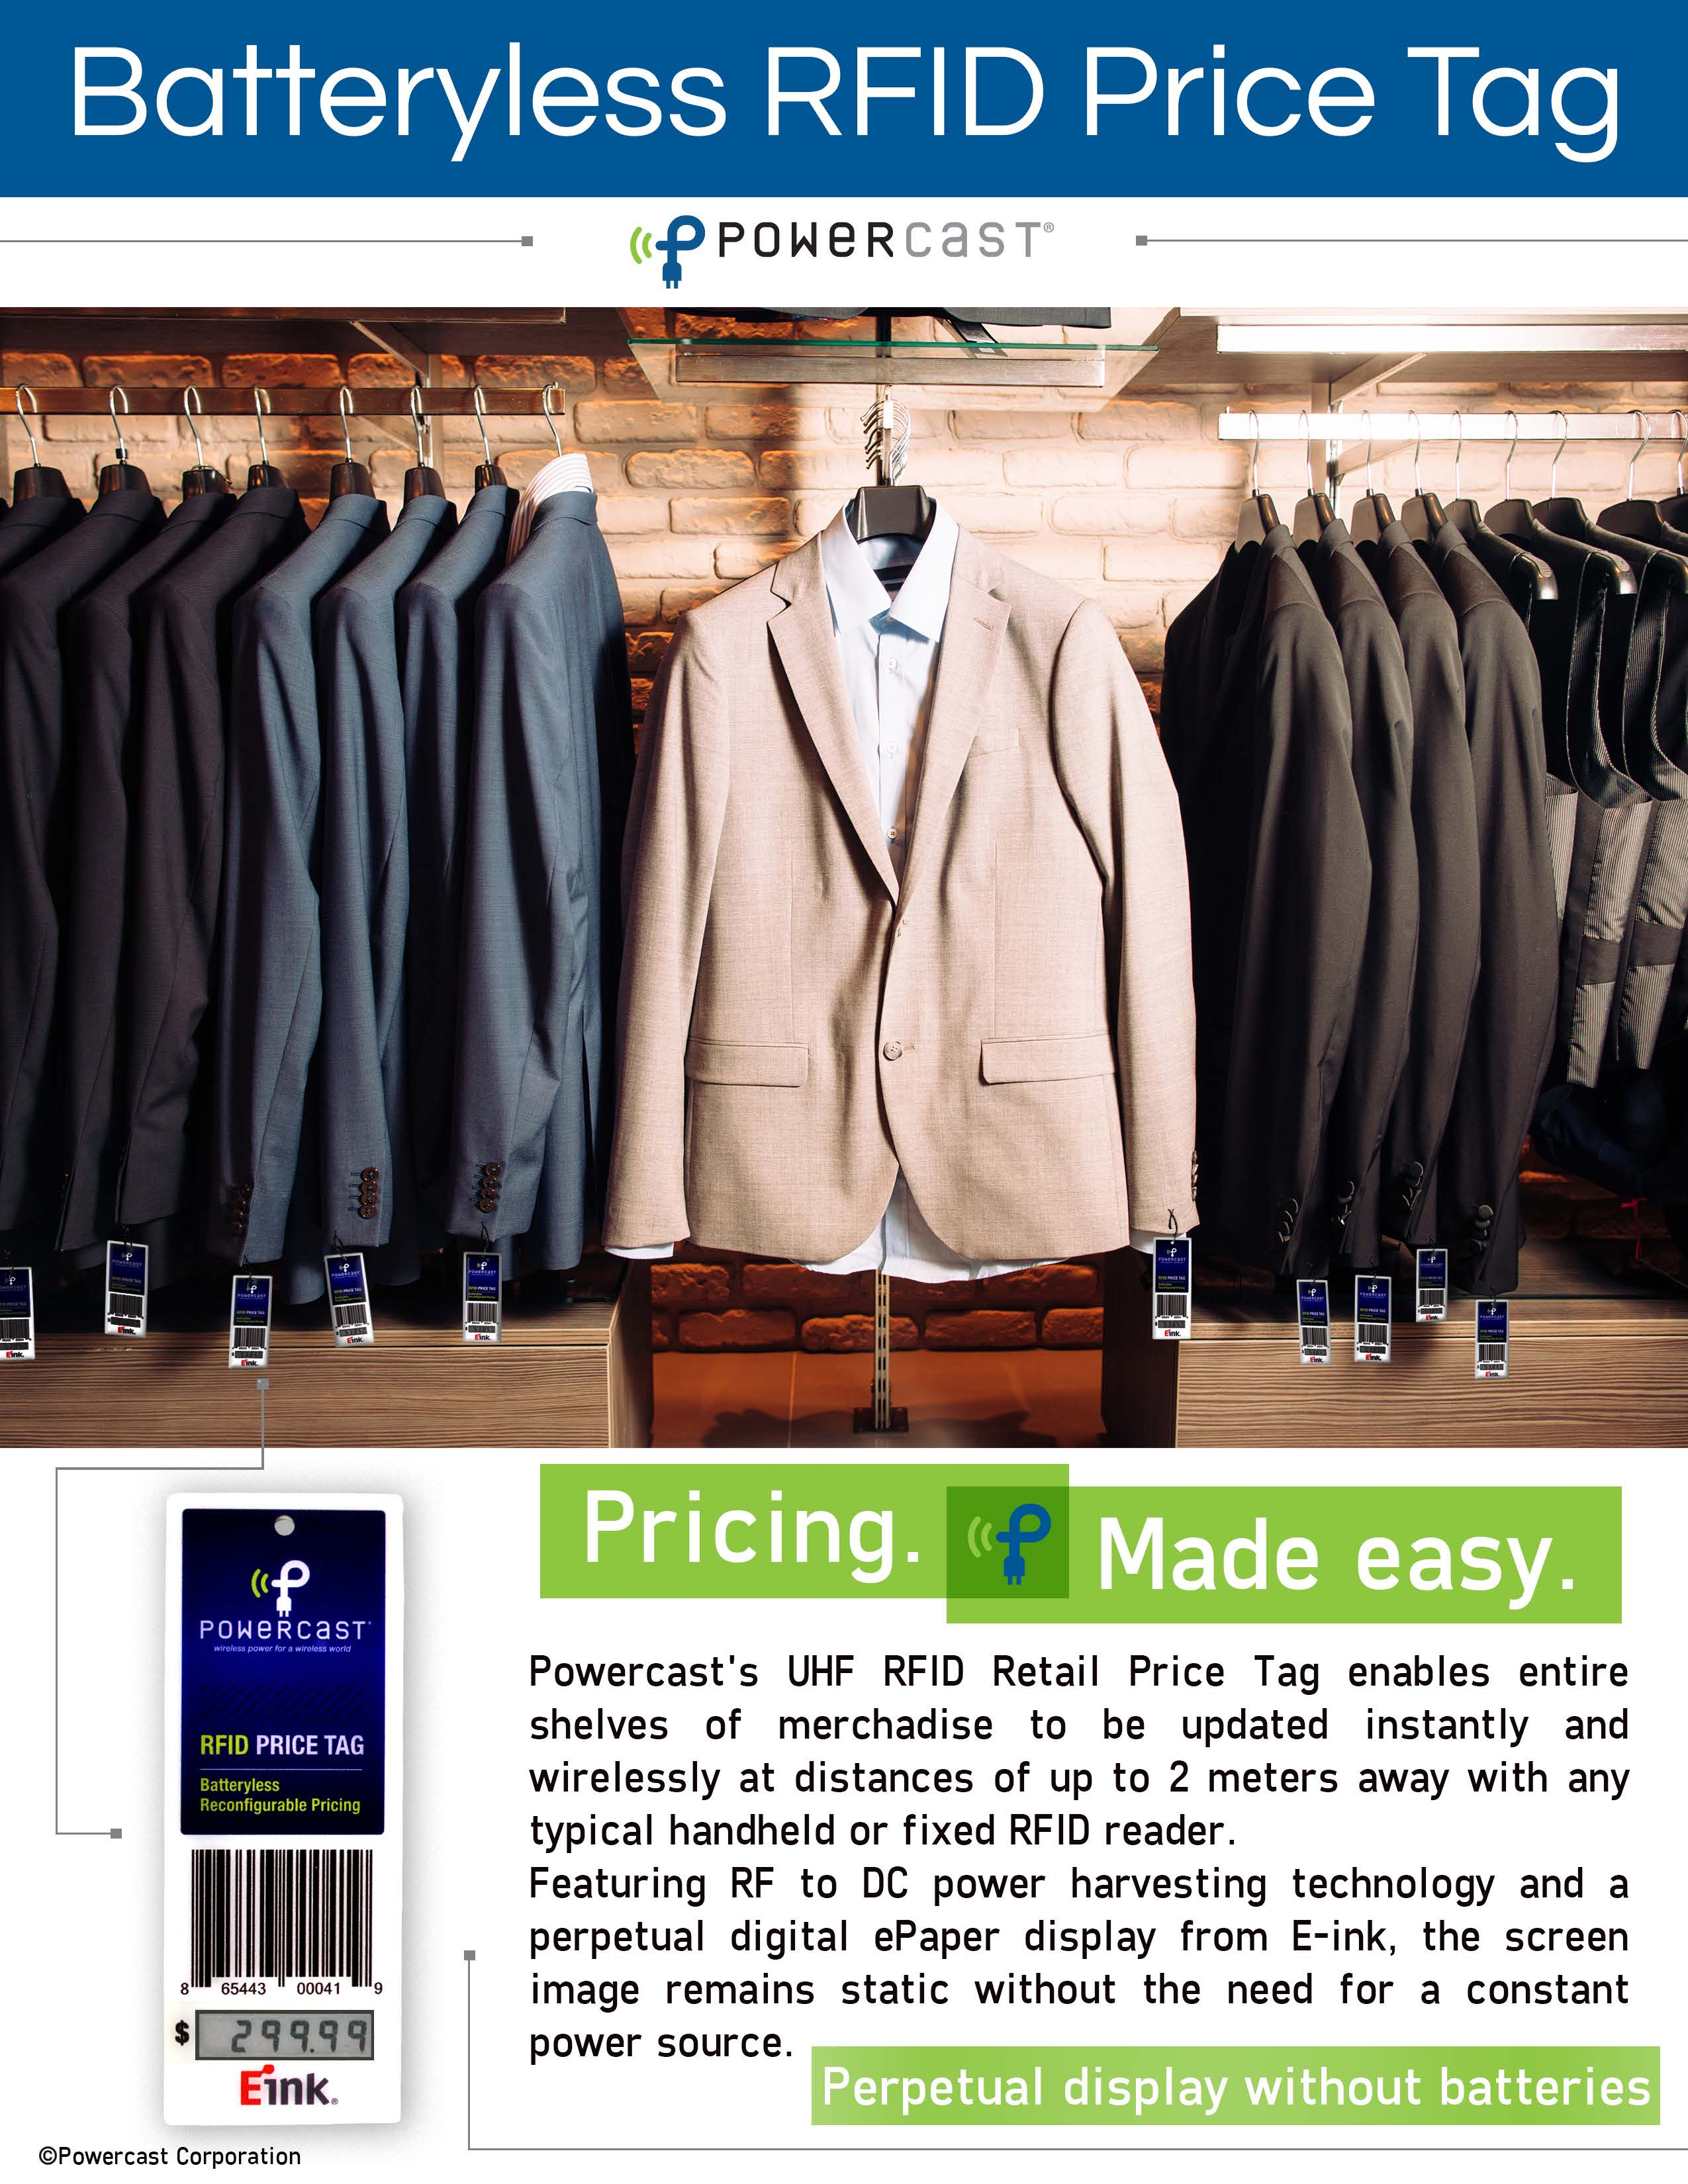 RFID Retail Price Tag Flyer_Page_1_Image_0001